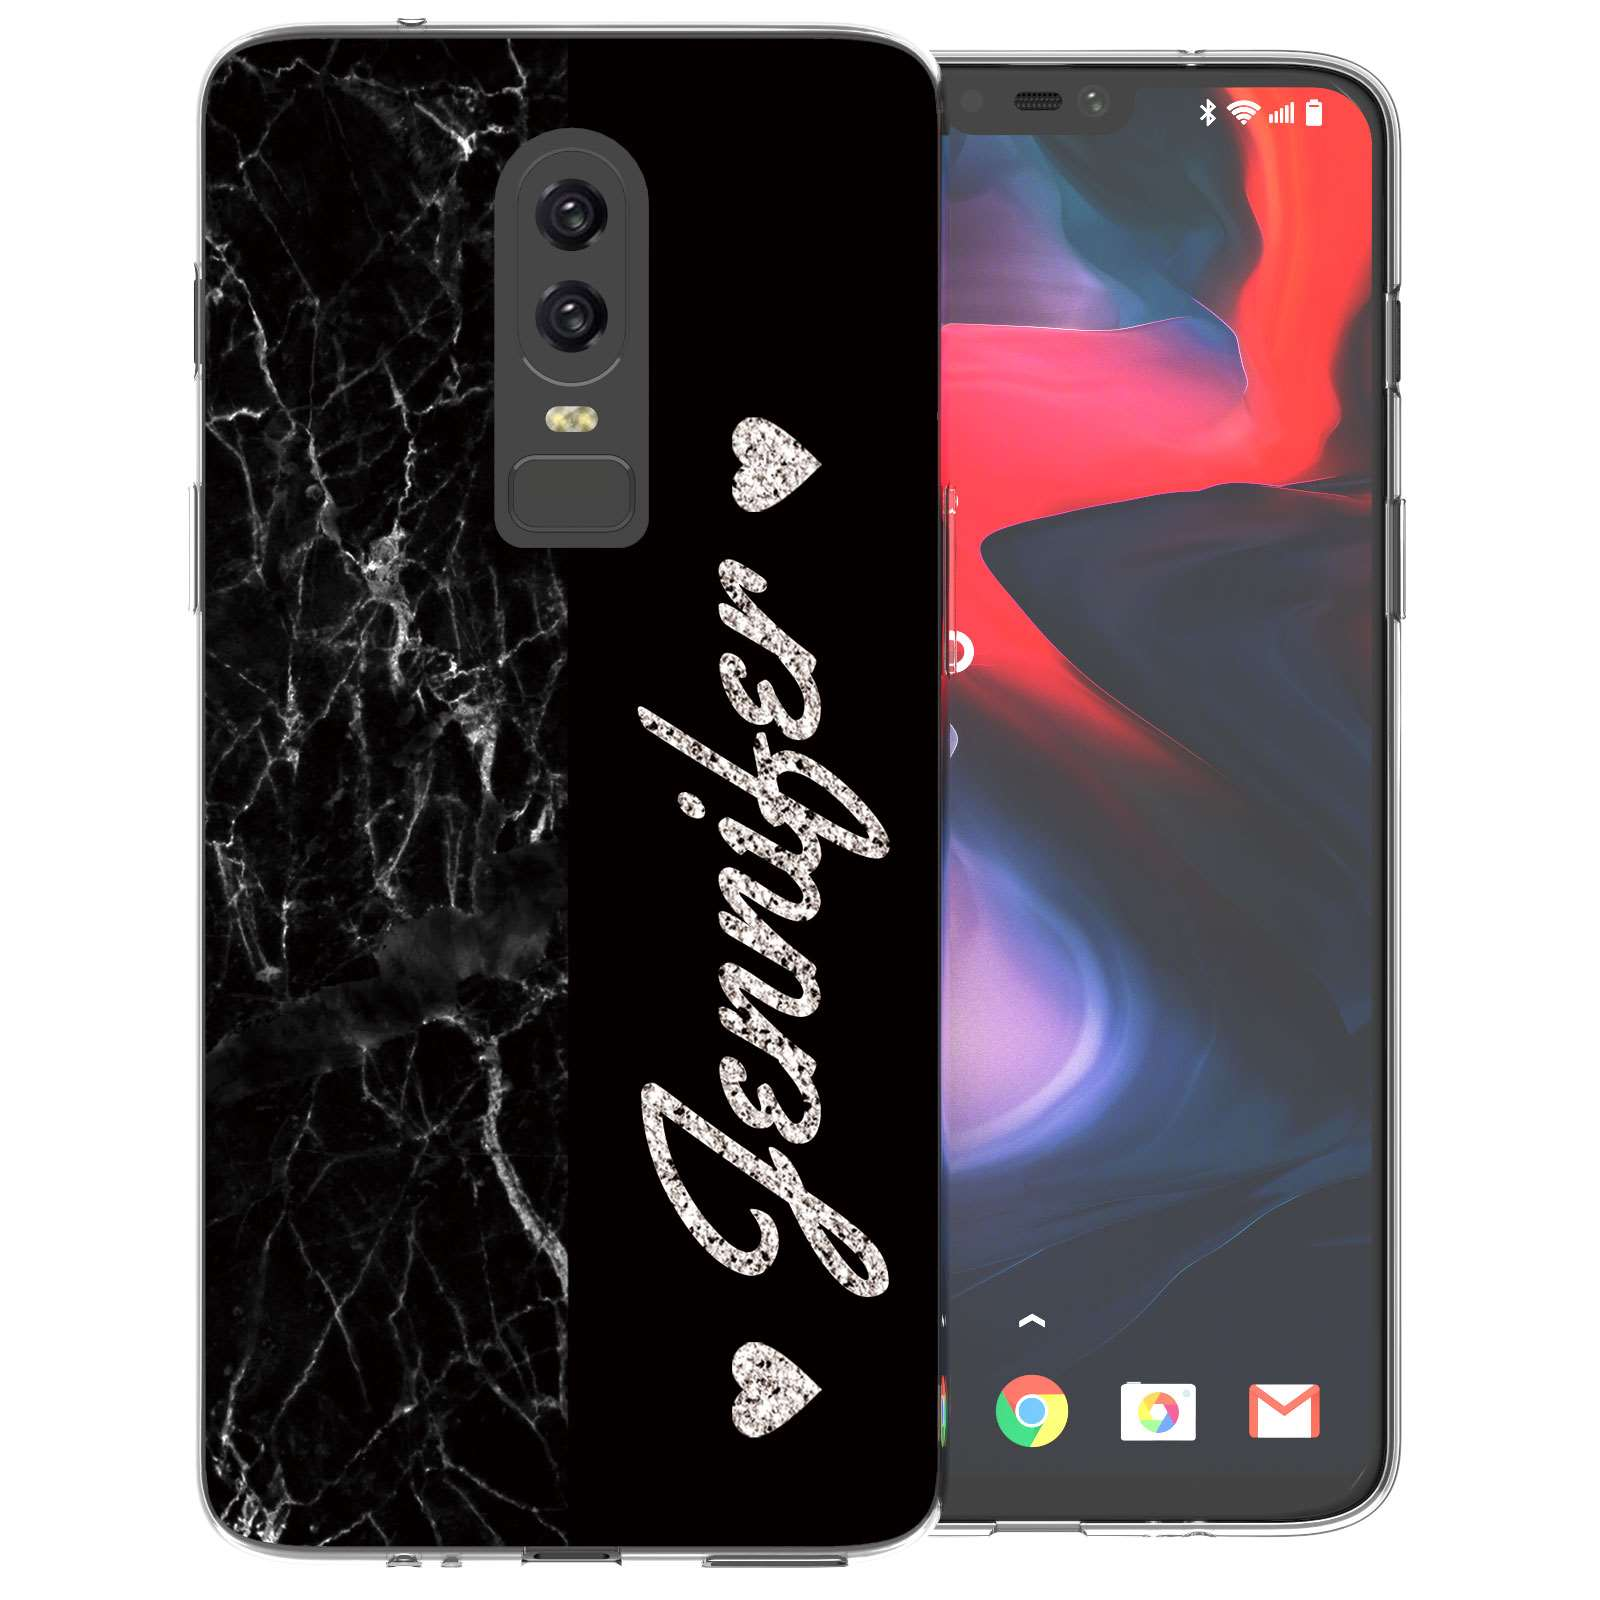 separation shoes 5795e 8d926 OnePlus 6 Black Marble Personalised TPU Gel Case